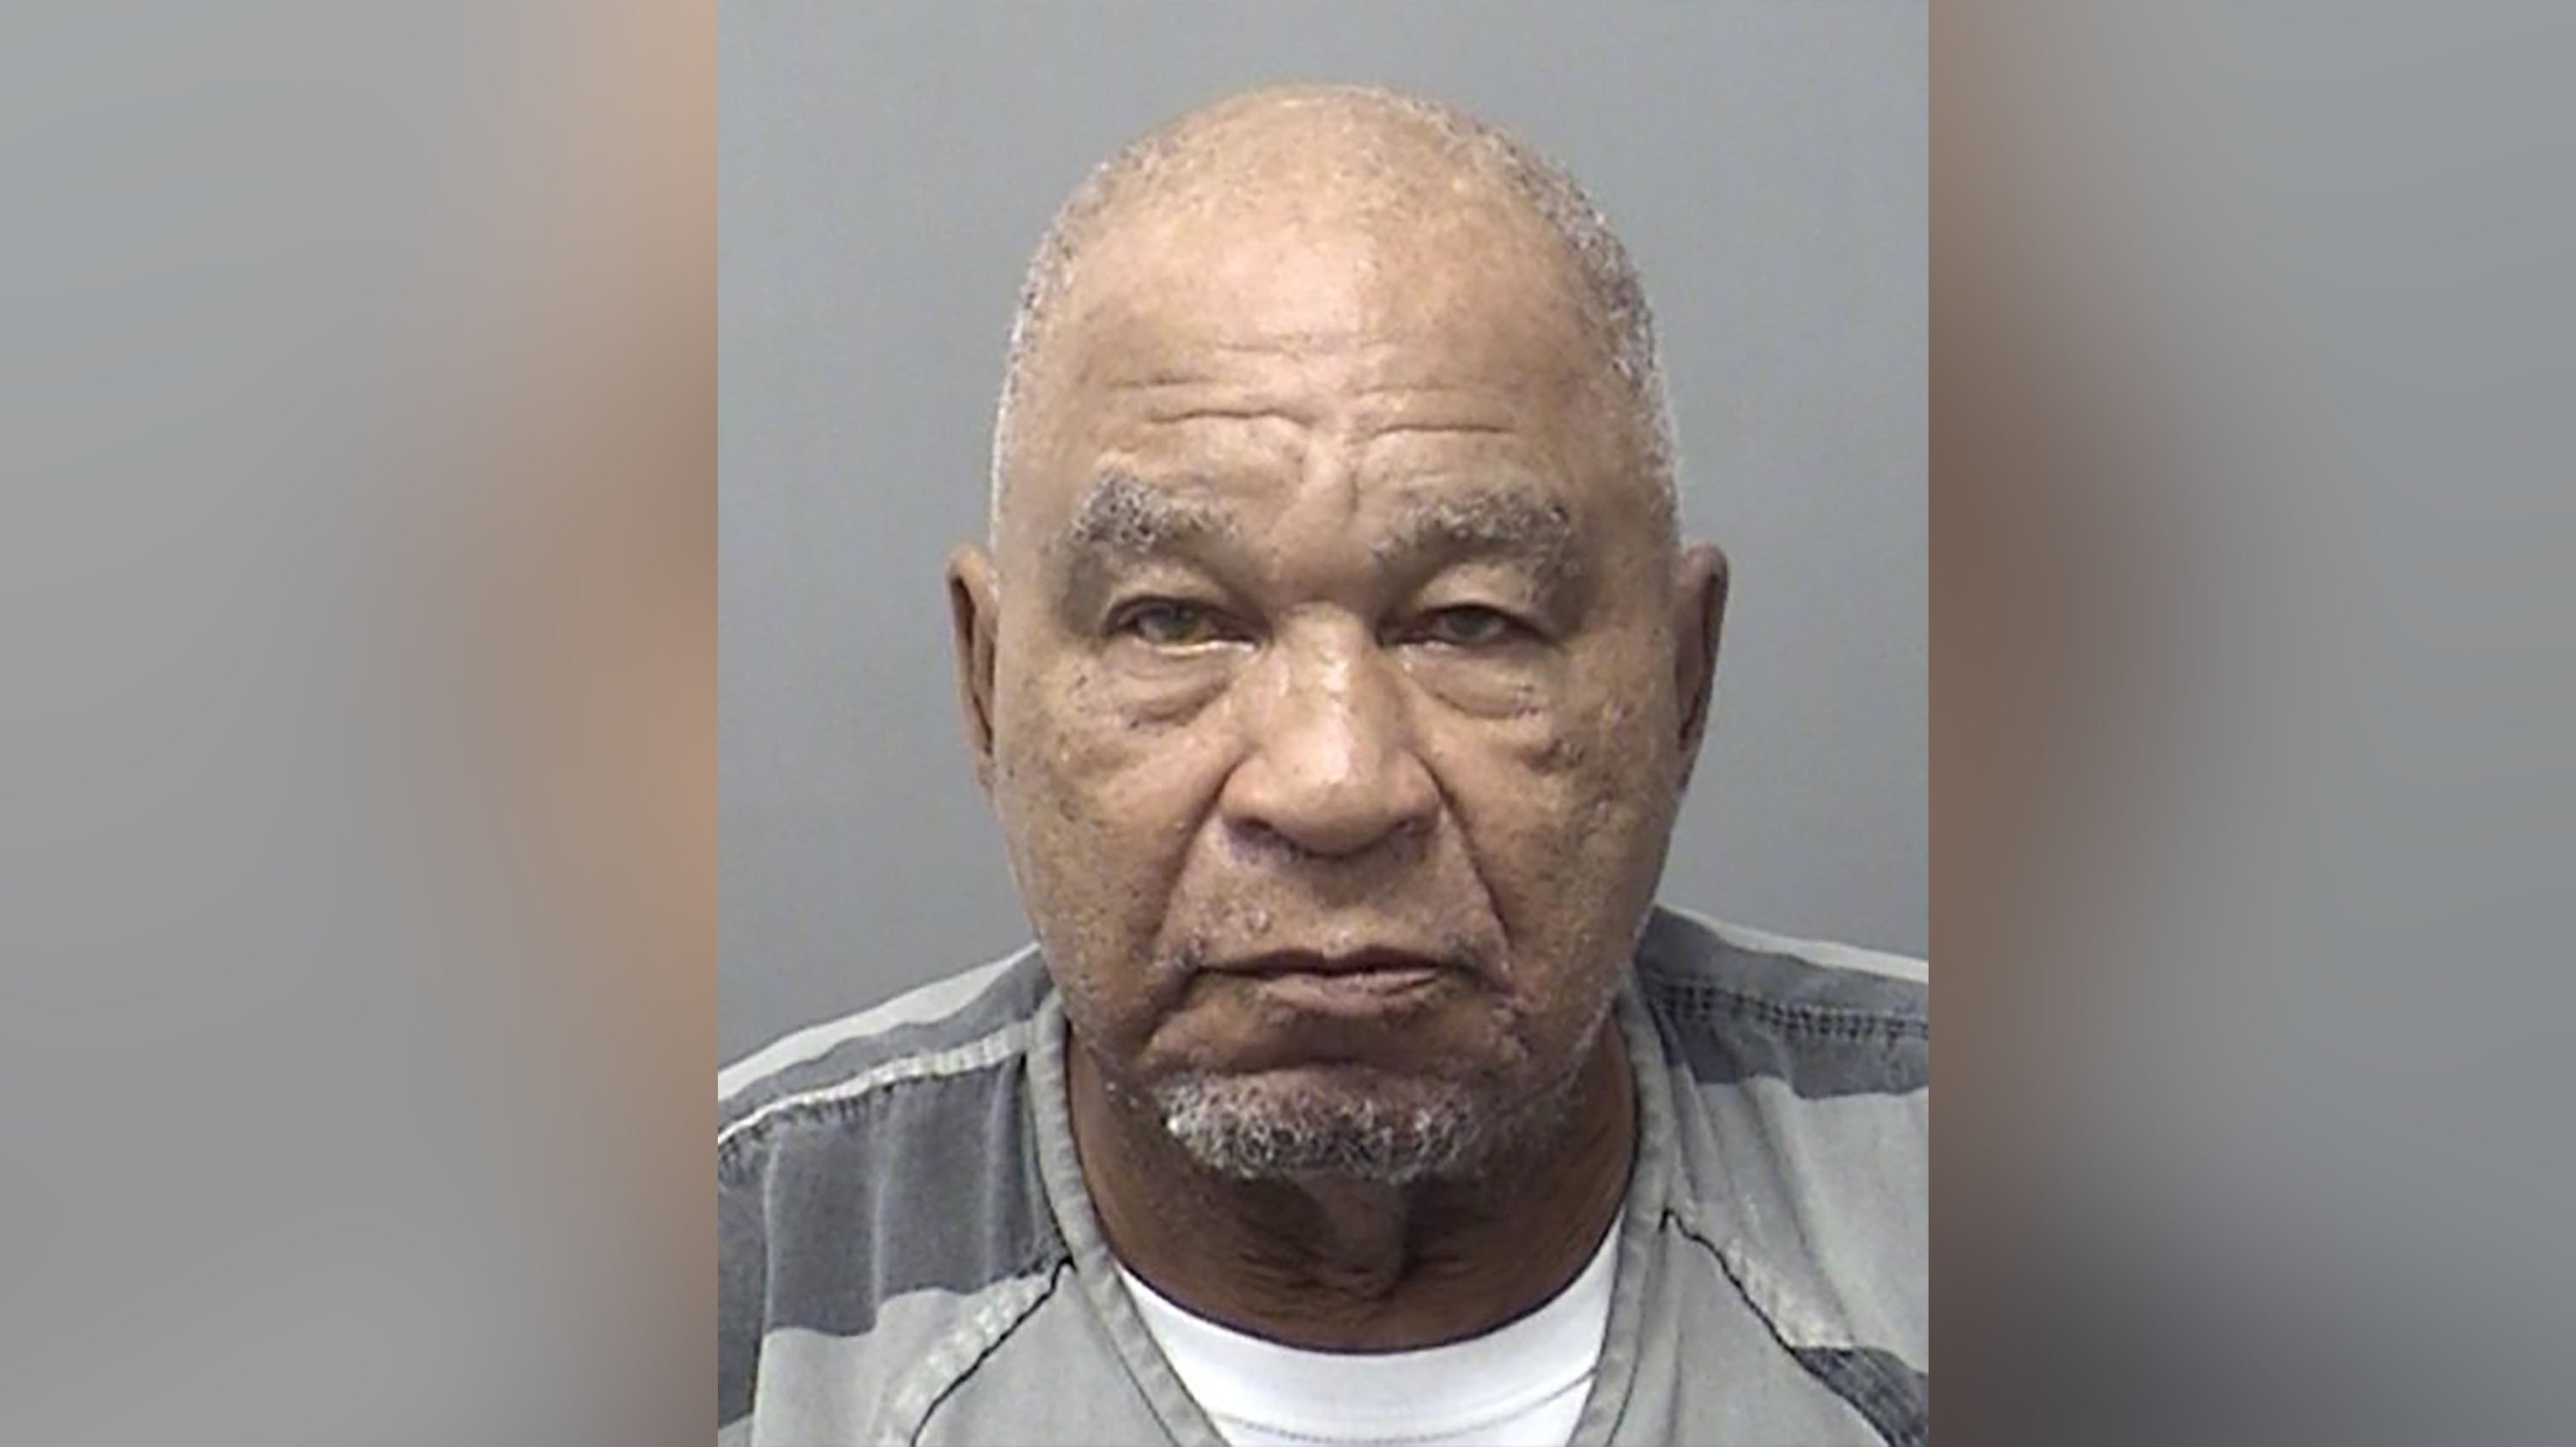 Samuel Little may be the most prolific serial killer in the US. One of those slayings may have occurred in Pine Bluff, Arkansas